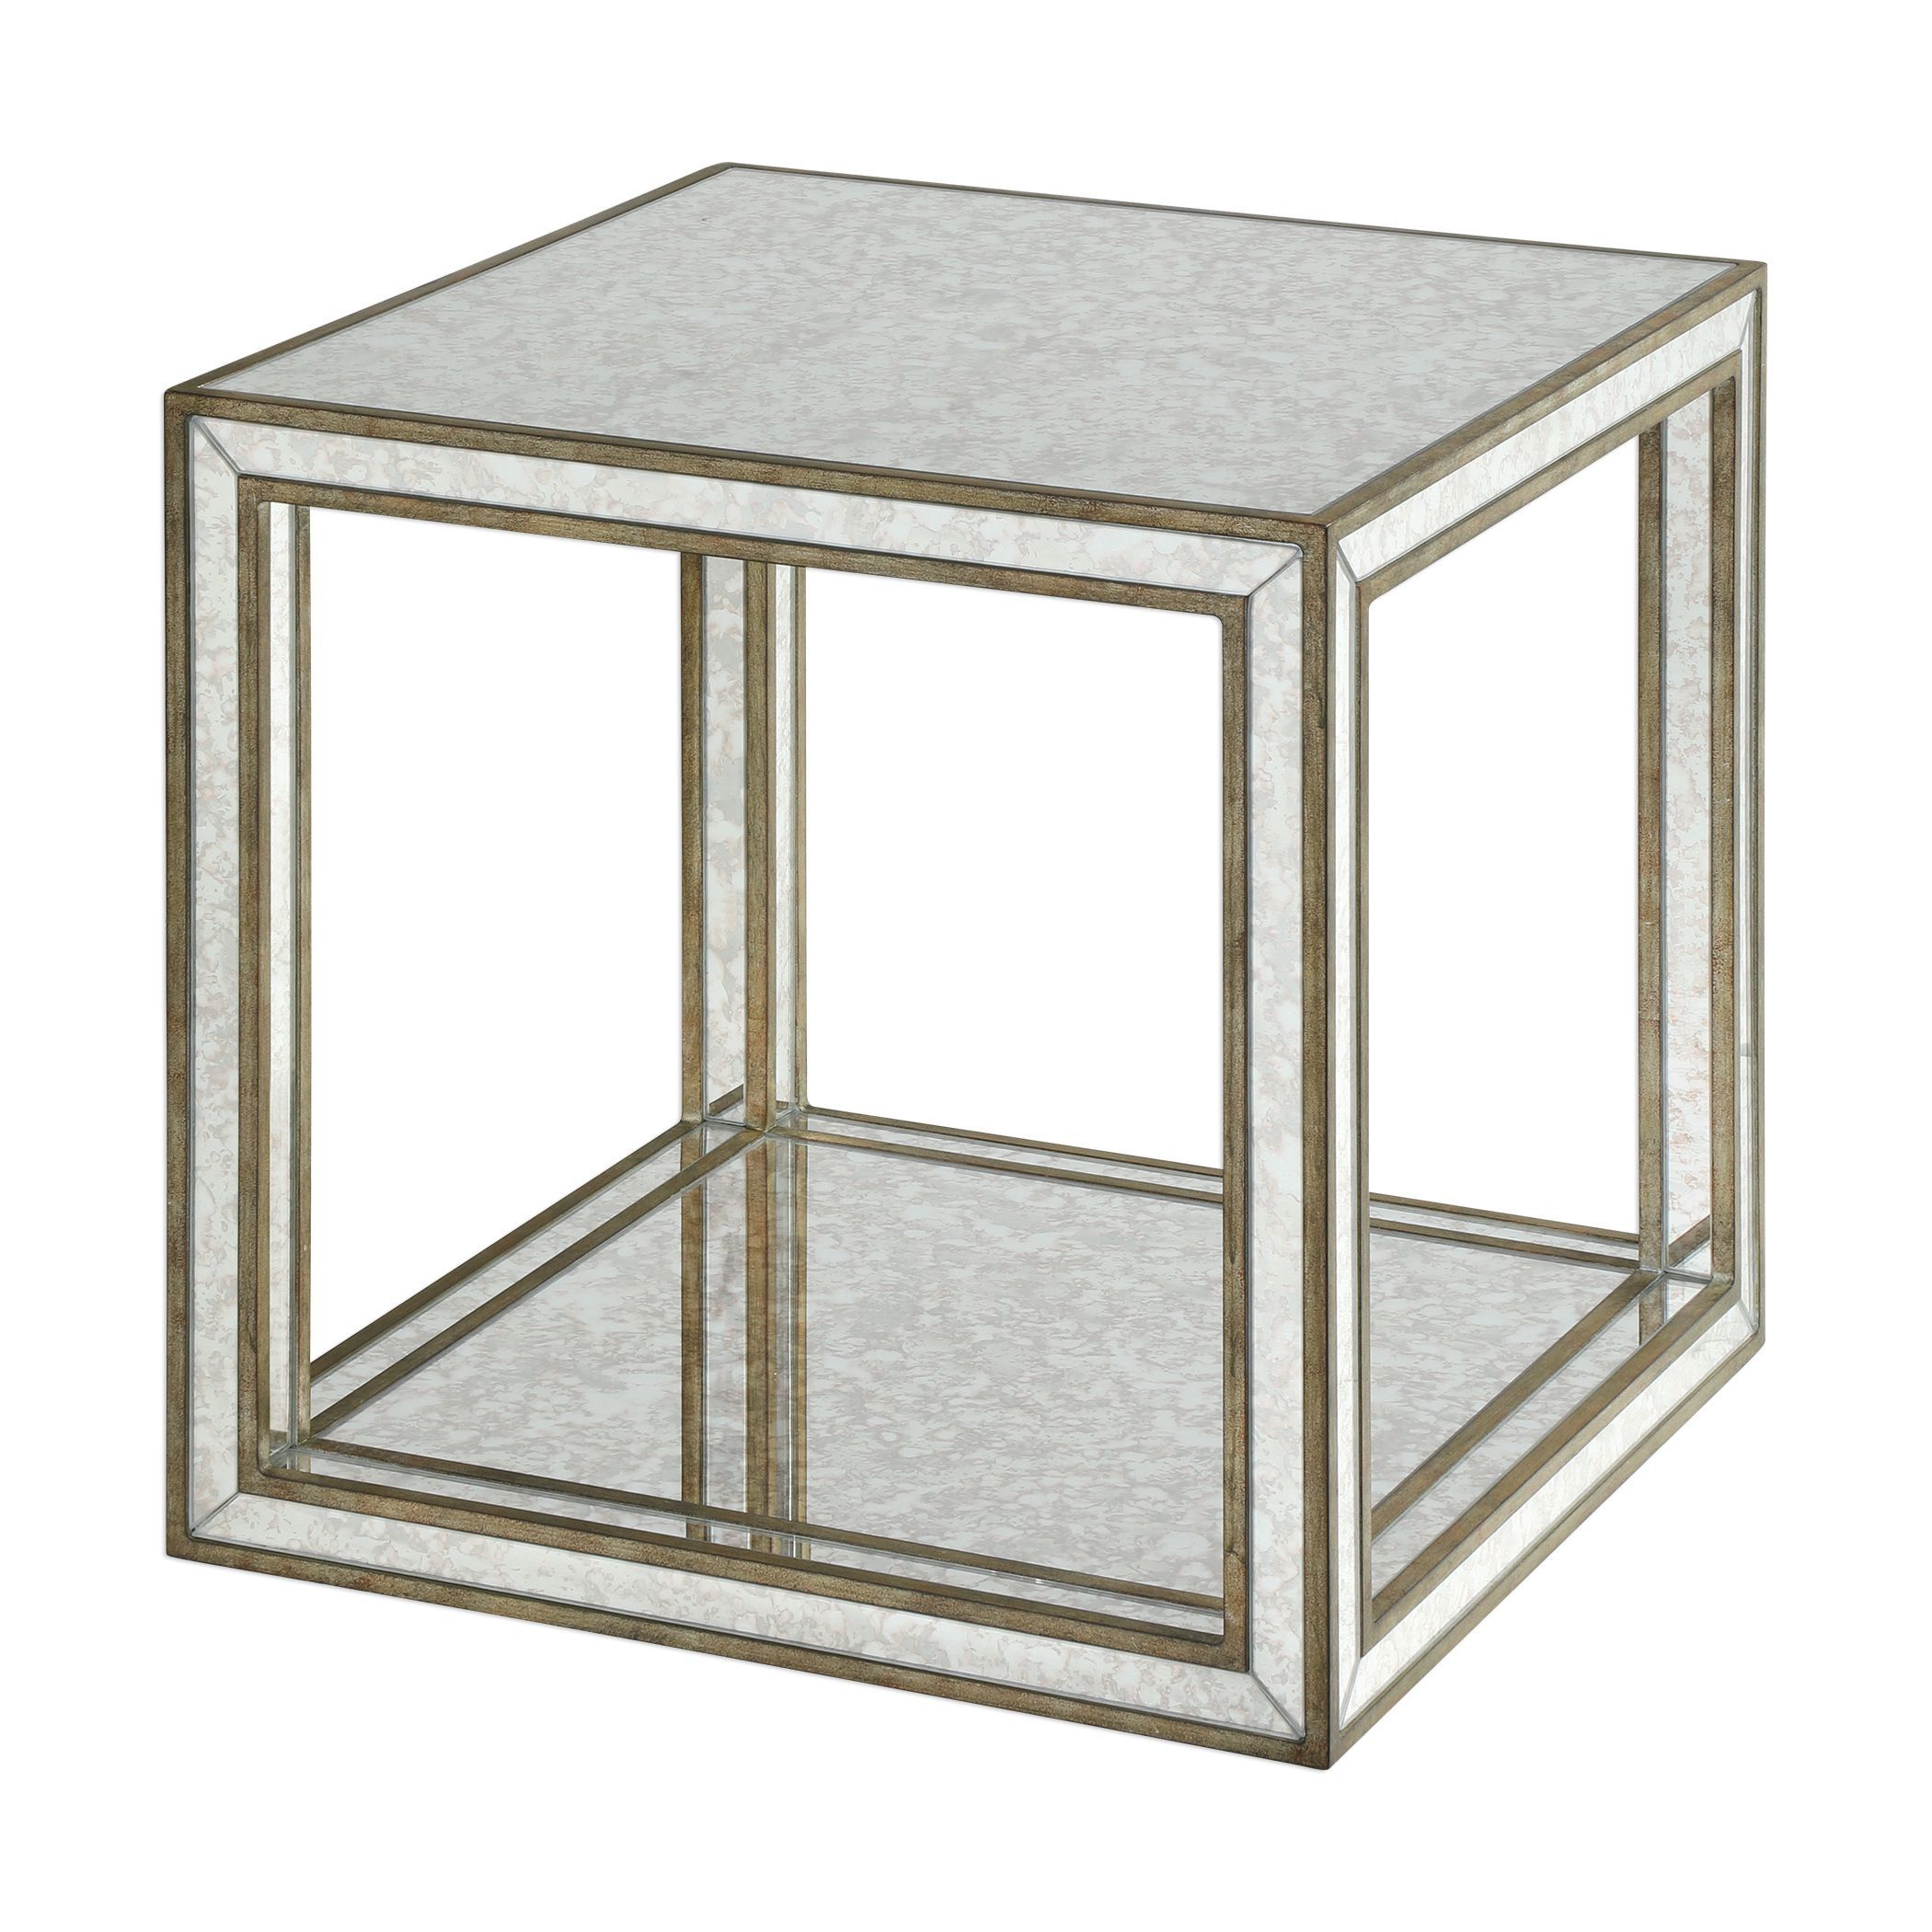 julie contemporary antique mirrored open cube accent table uttermost banquet tablecloths modern lamp designs aluminum door threshold small drop leaf dining short end lamps with